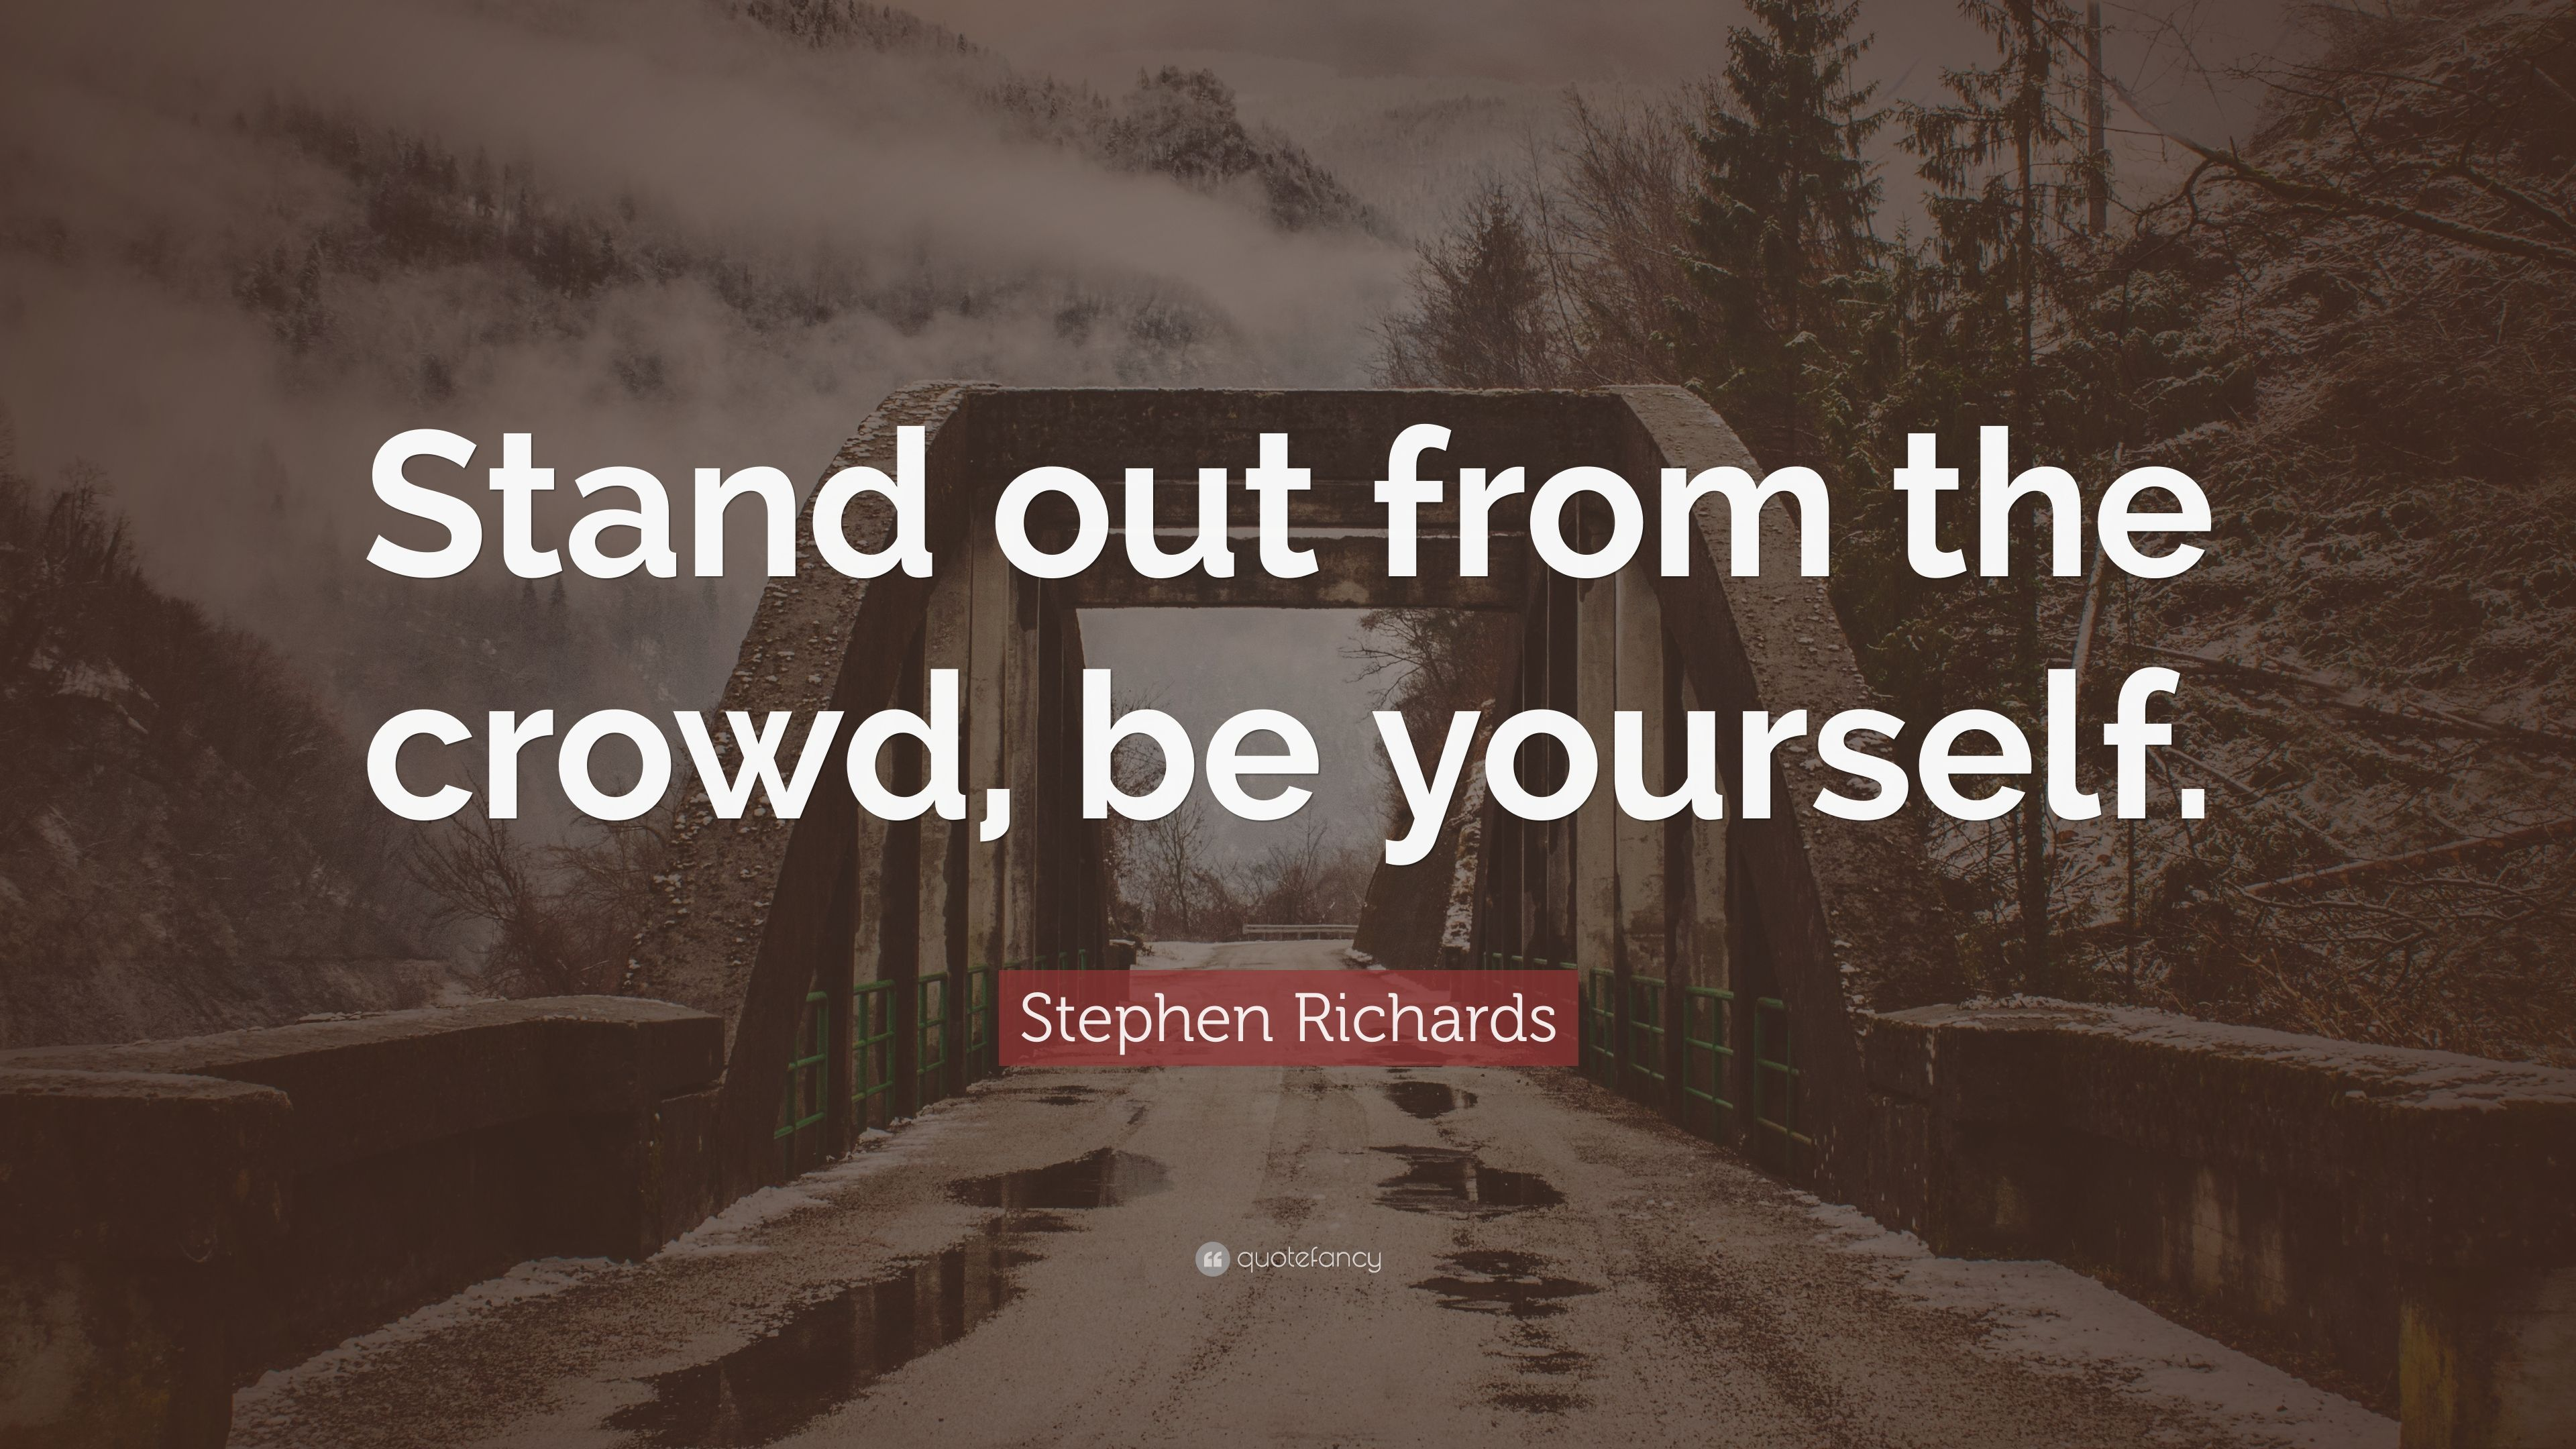 Quotes On Standing Out From The Crowd